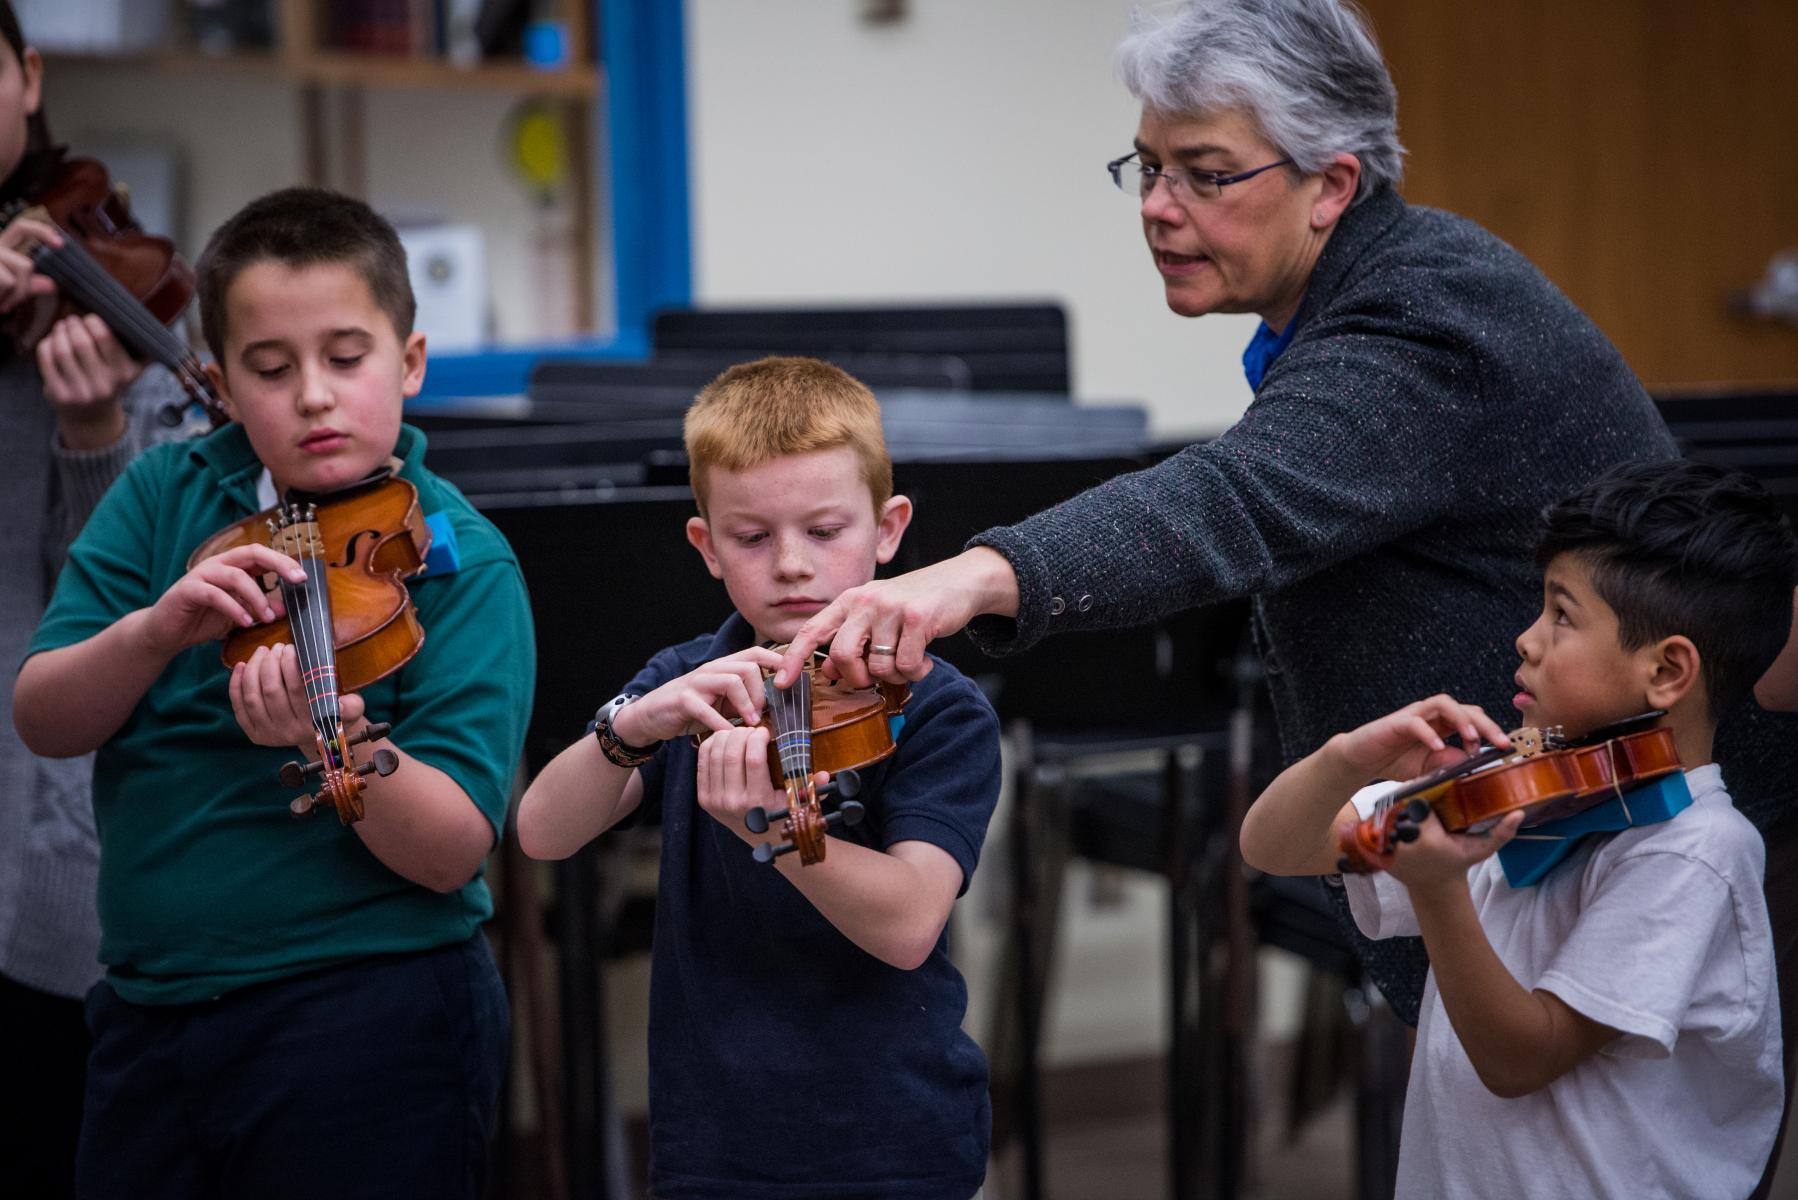 Teacher with a students violins